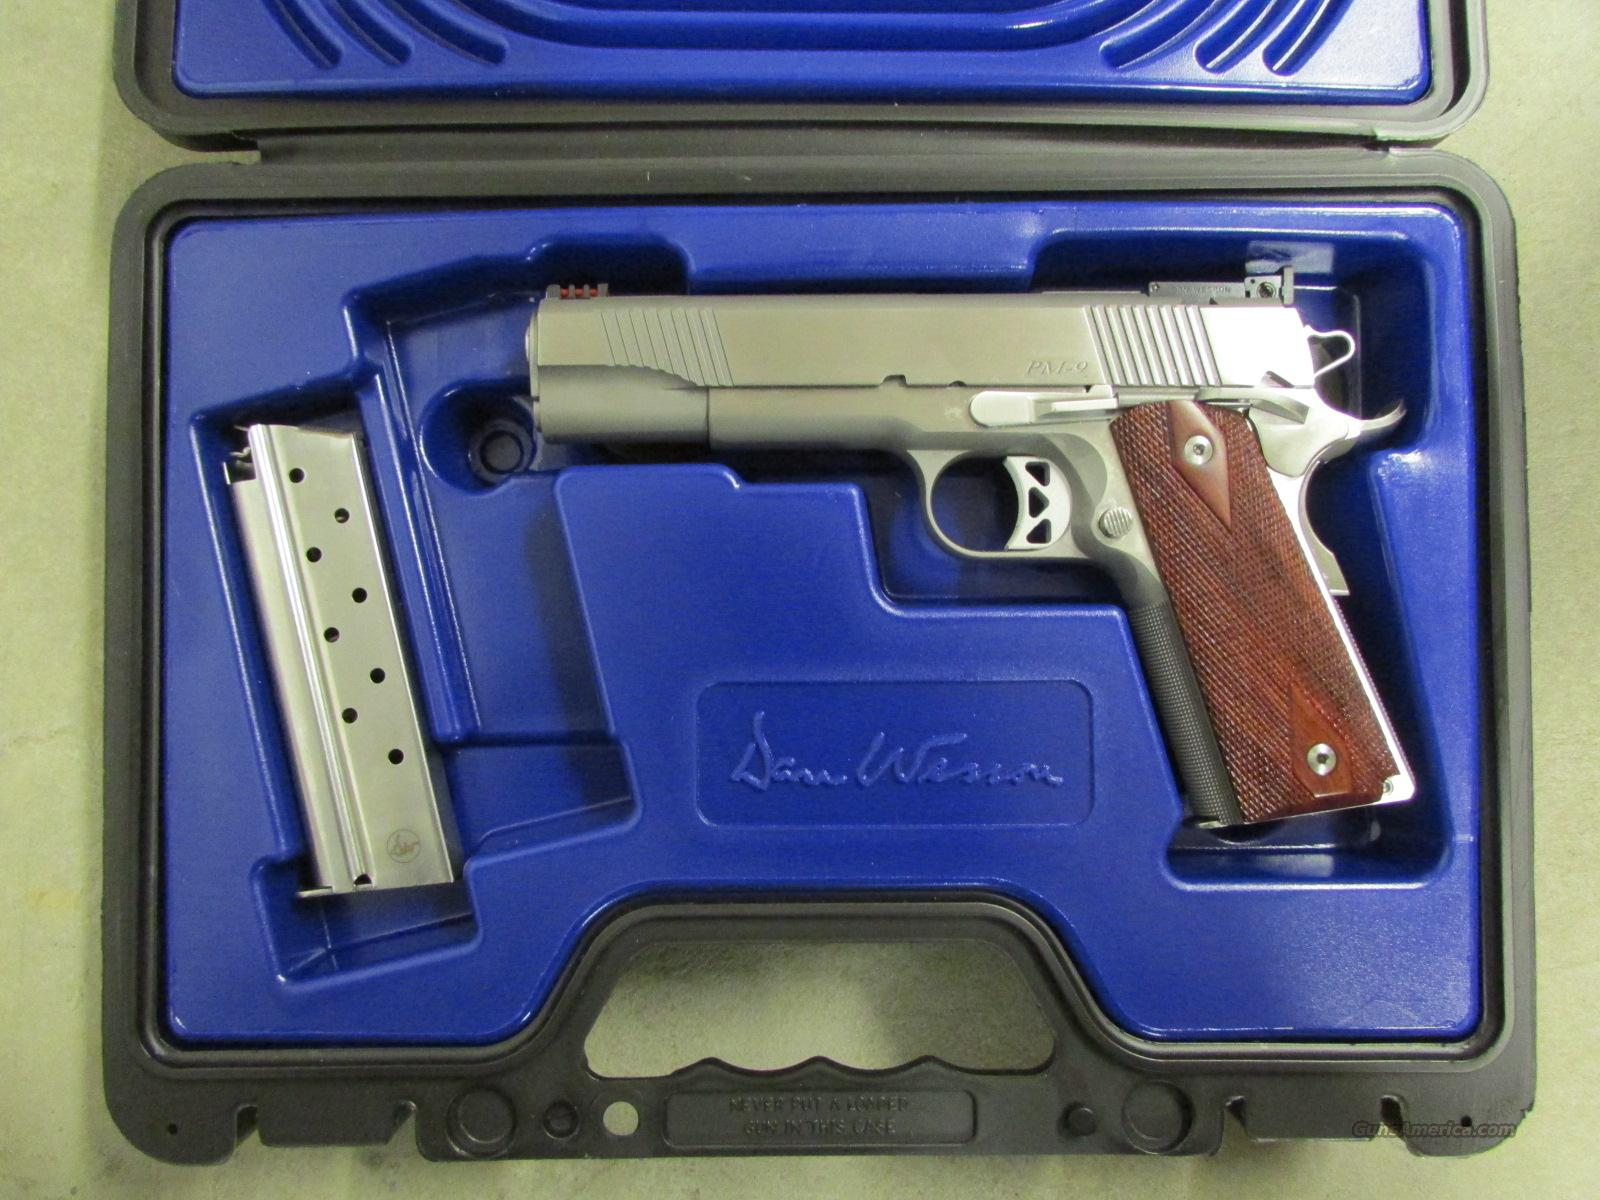 Dan Wesson Pointman Nine 9mm  Guns > Pistols > Dan Wesson Pistols/Revolvers > 1911 Style